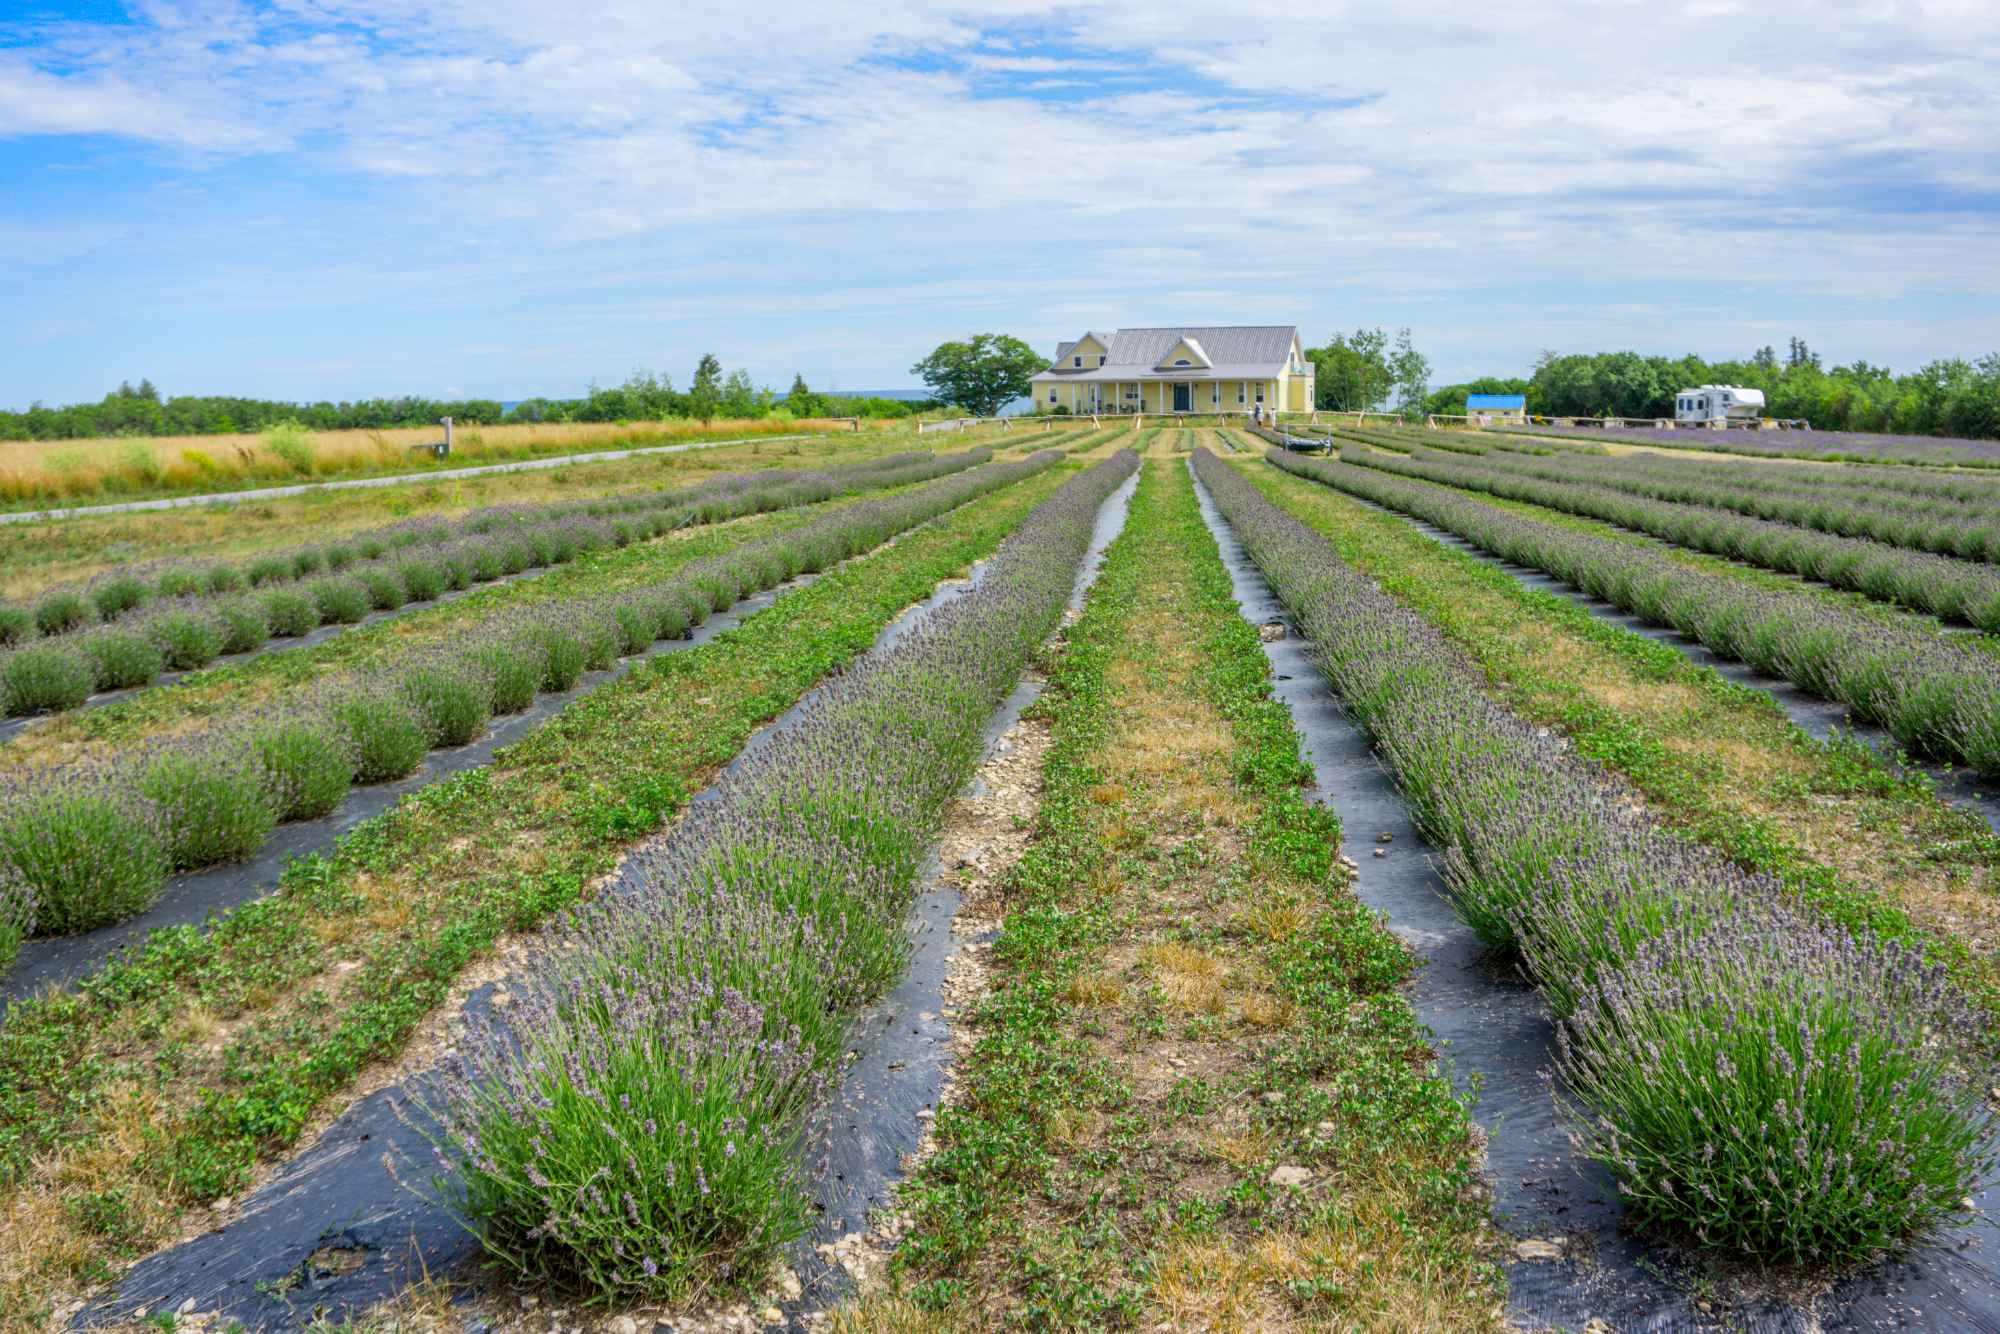 Field of lavender with house in background